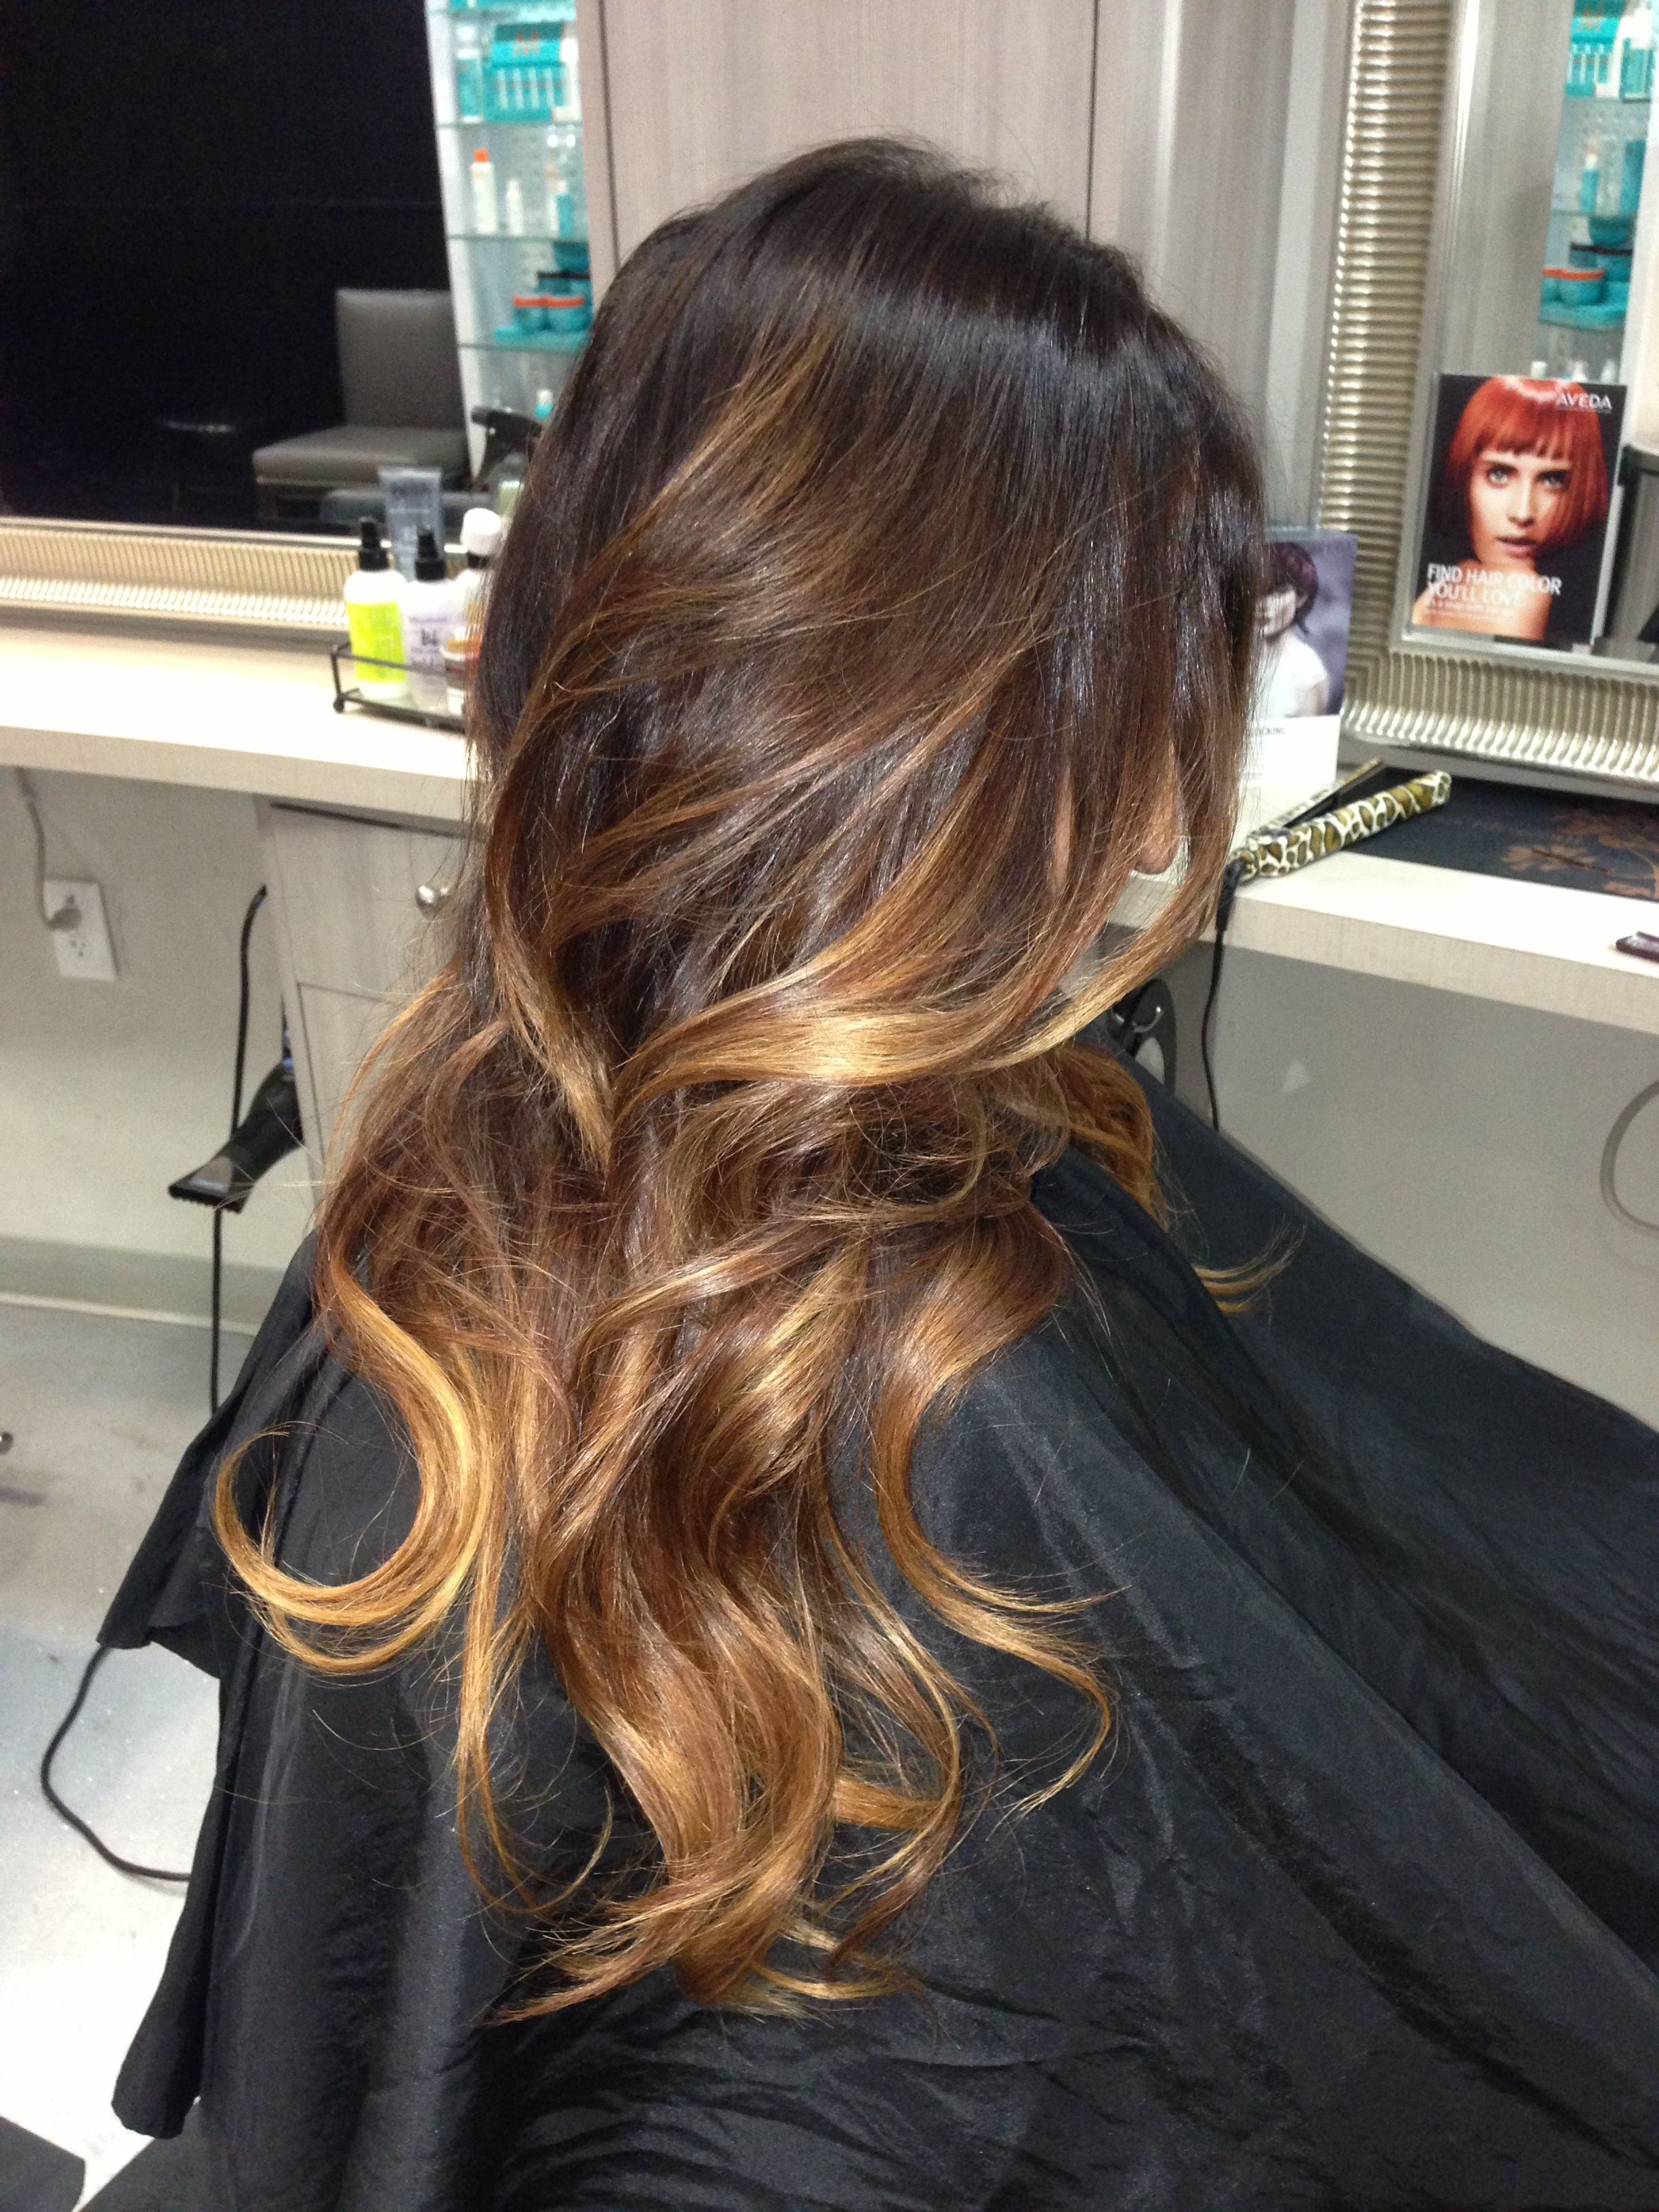 Darke brown base balayaged to a multidimensional chocolate and